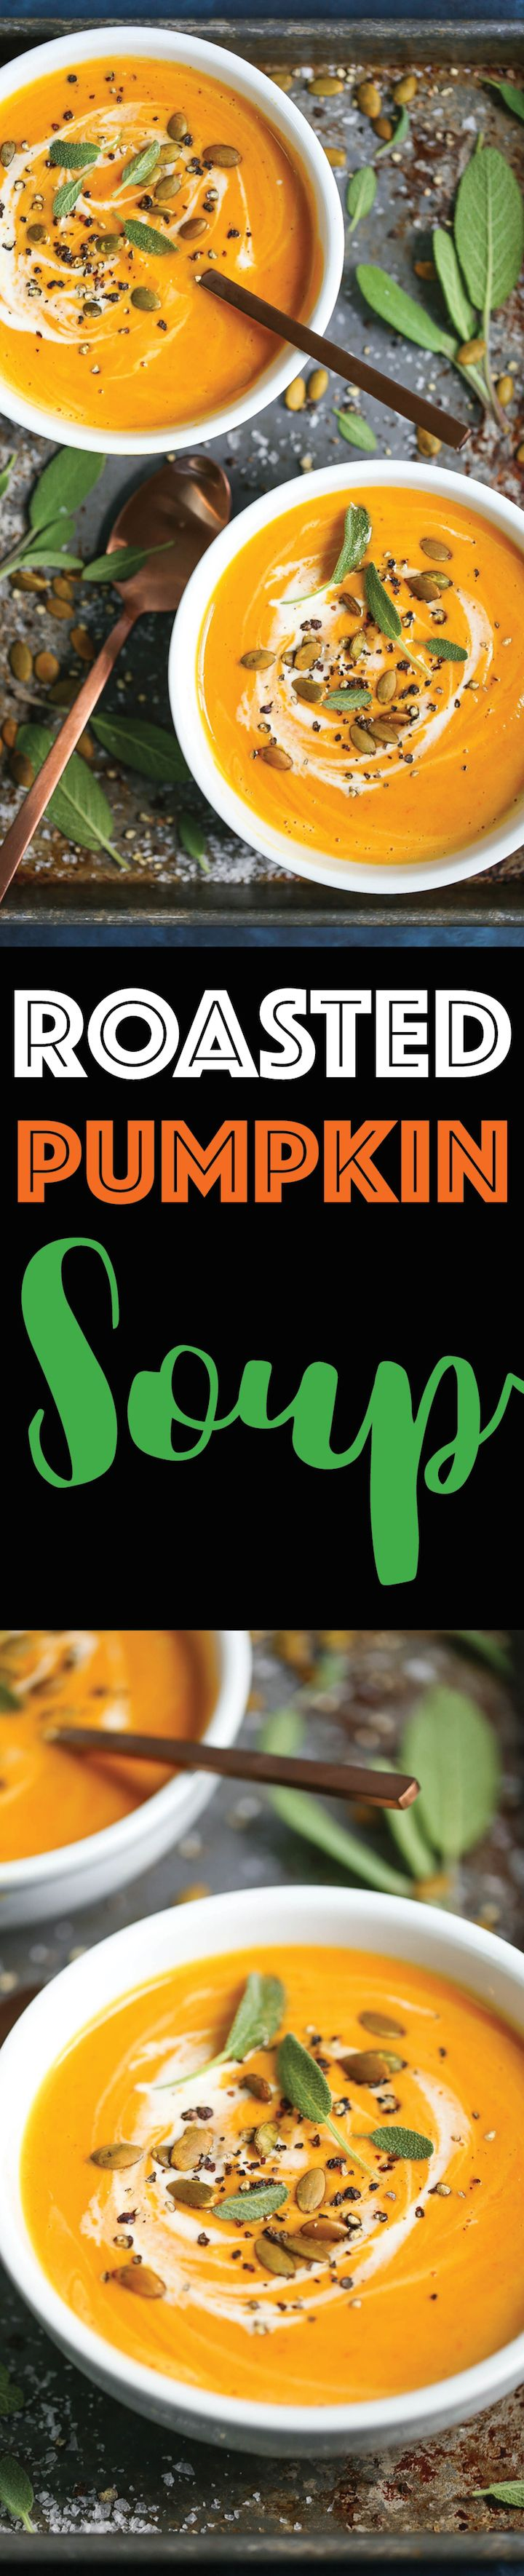 Roasted Pumpkin Soup - My favorite Fall and Winter soup! You'll really want it all year long. And you can also substitute the pumpkin with butternut squash!